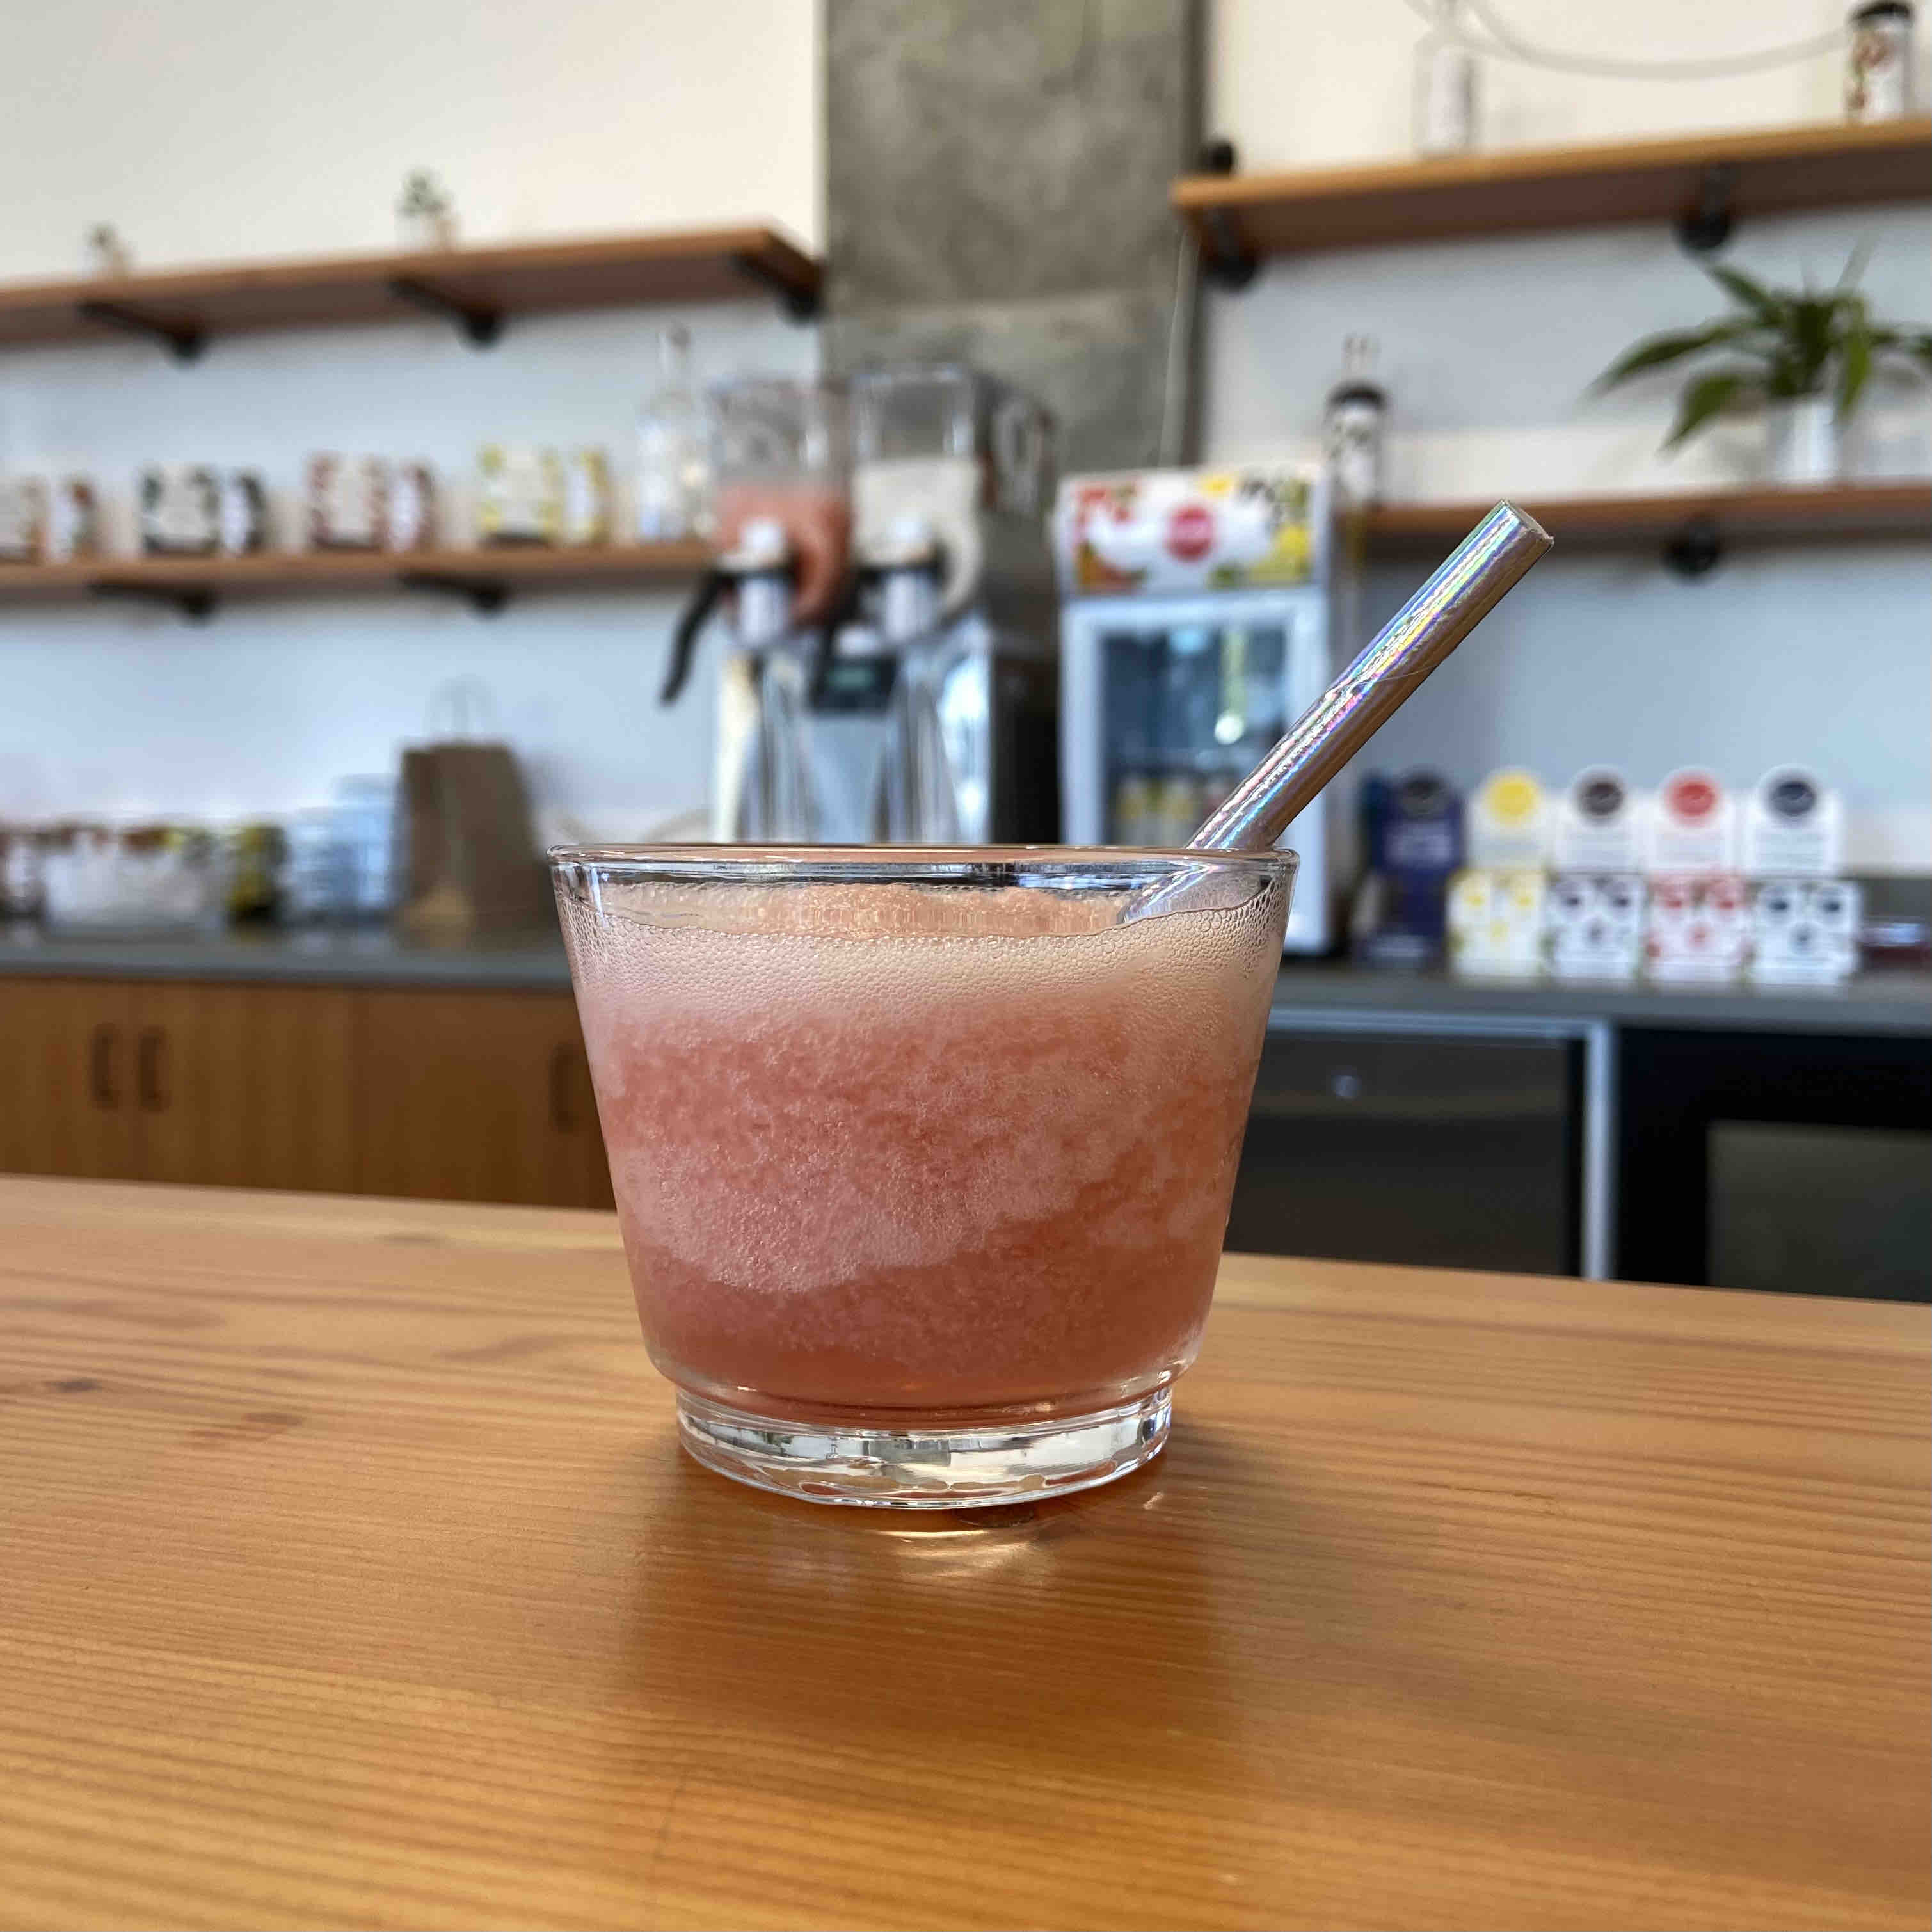 A frozen Grapefruit Slushie with Wild Roots London Dry Gin at the Wild Roots Spirits Tasting Room.